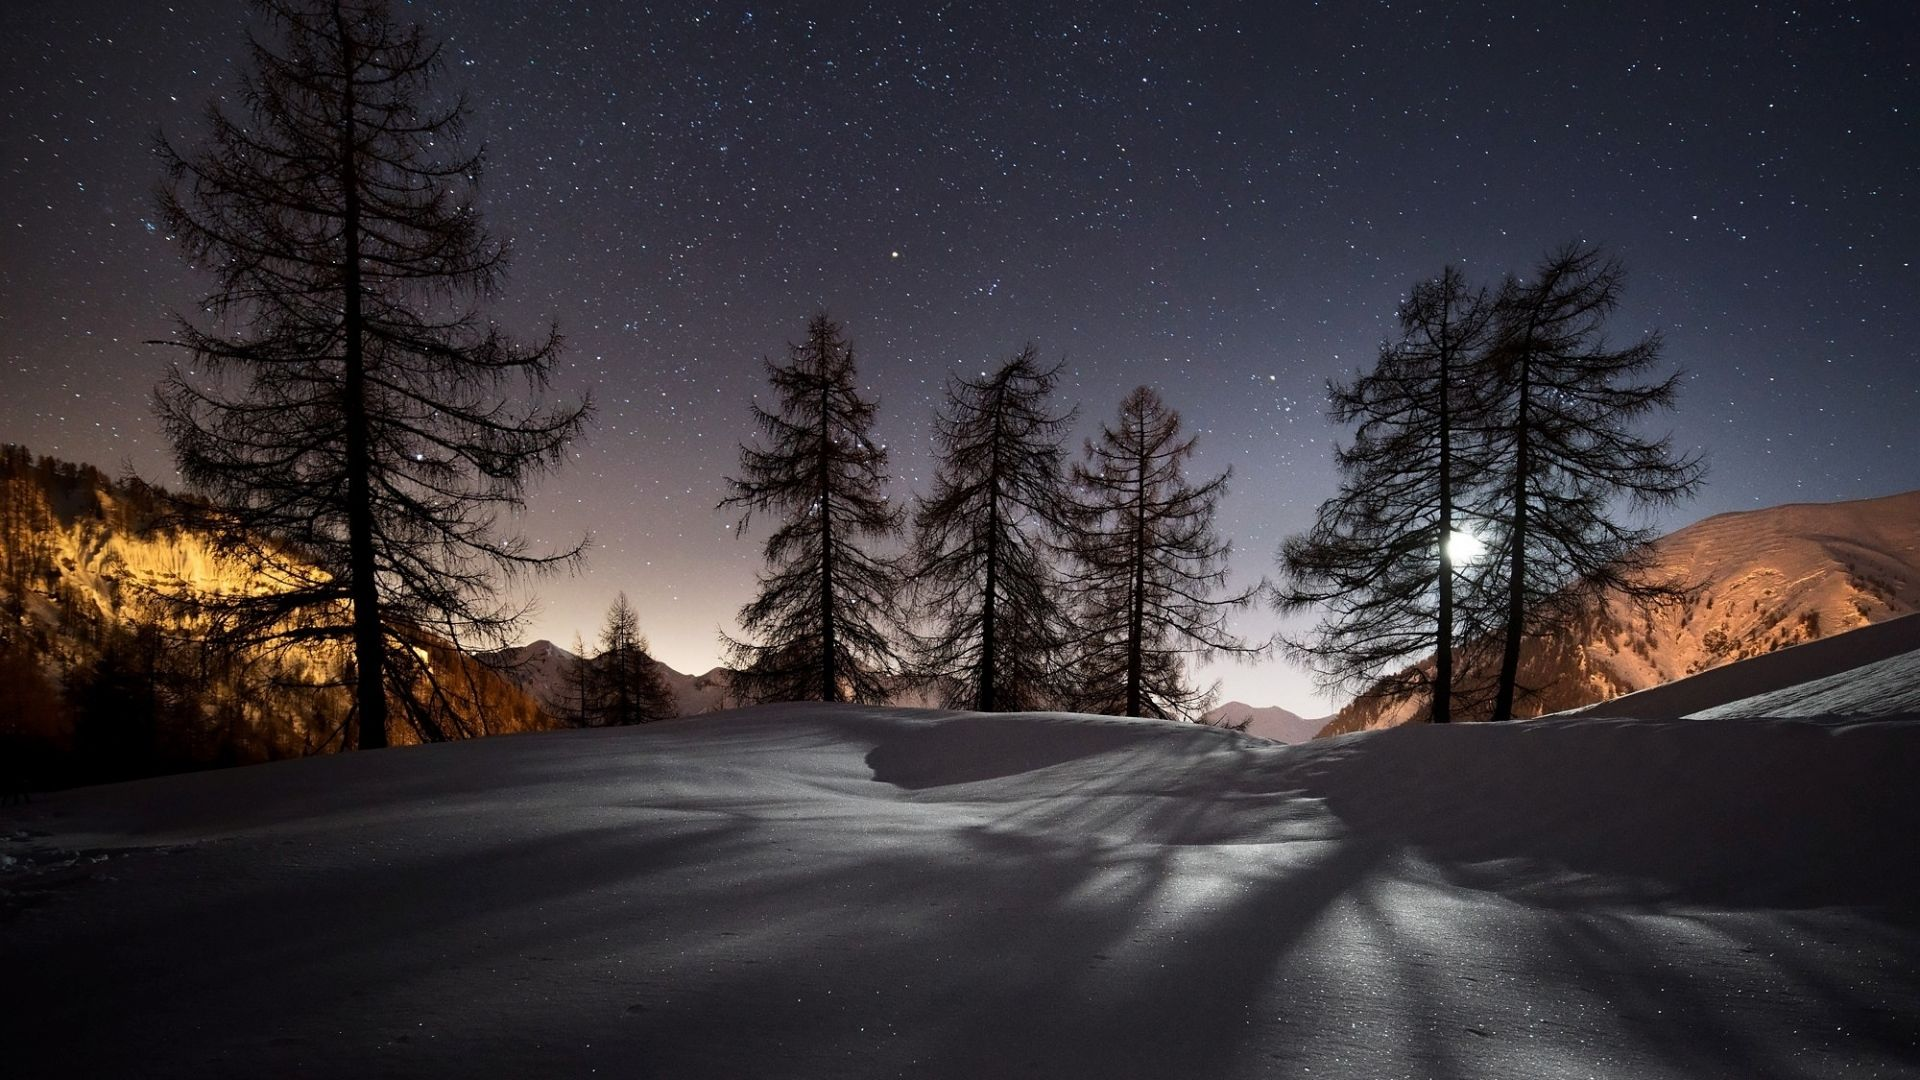 1920x1080 Wallpaper winter, trees, snow, night, landscape